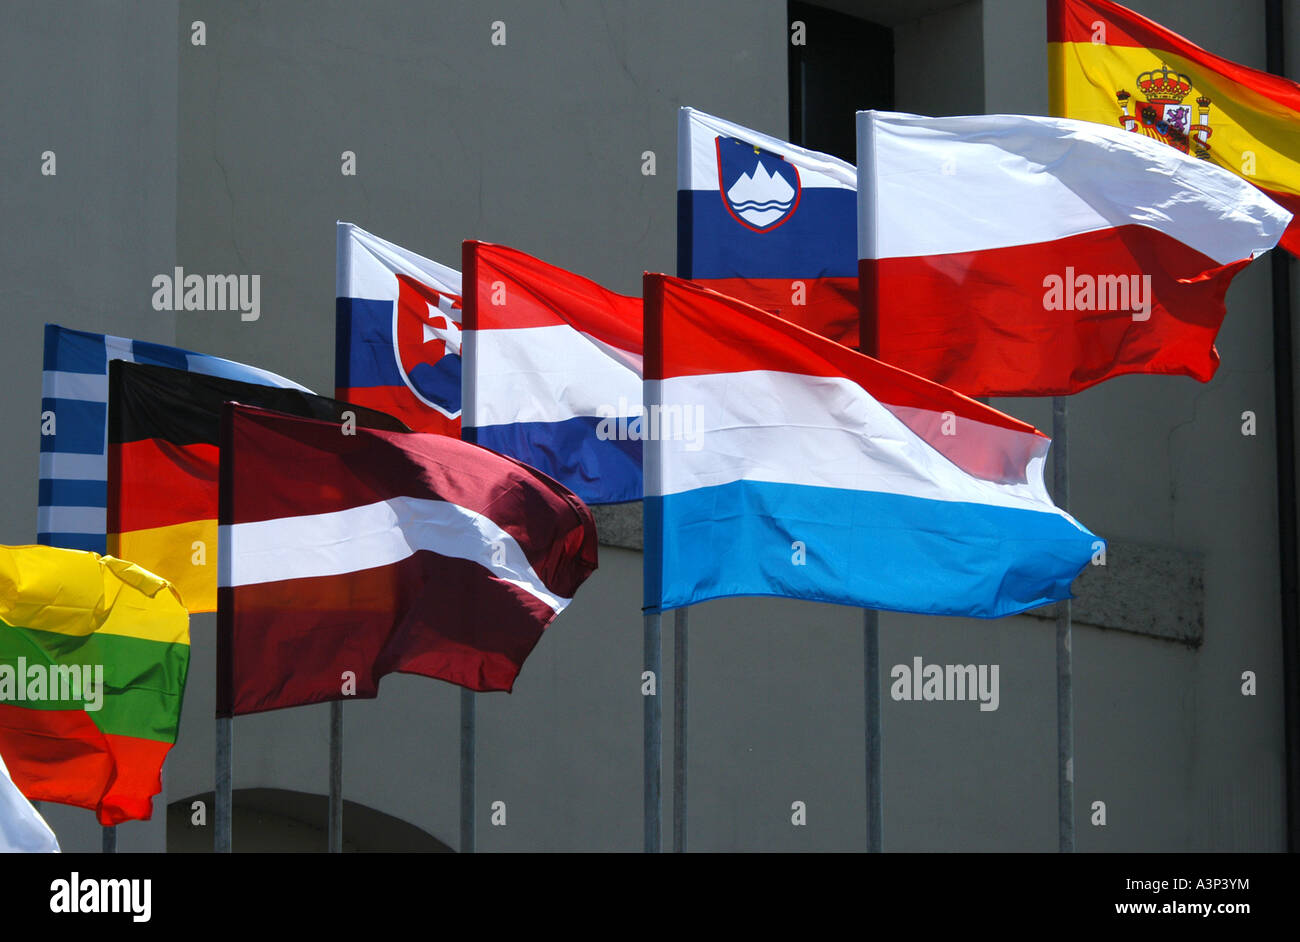 Waving flags of European states in Prague, Czech Republic - Stock Image